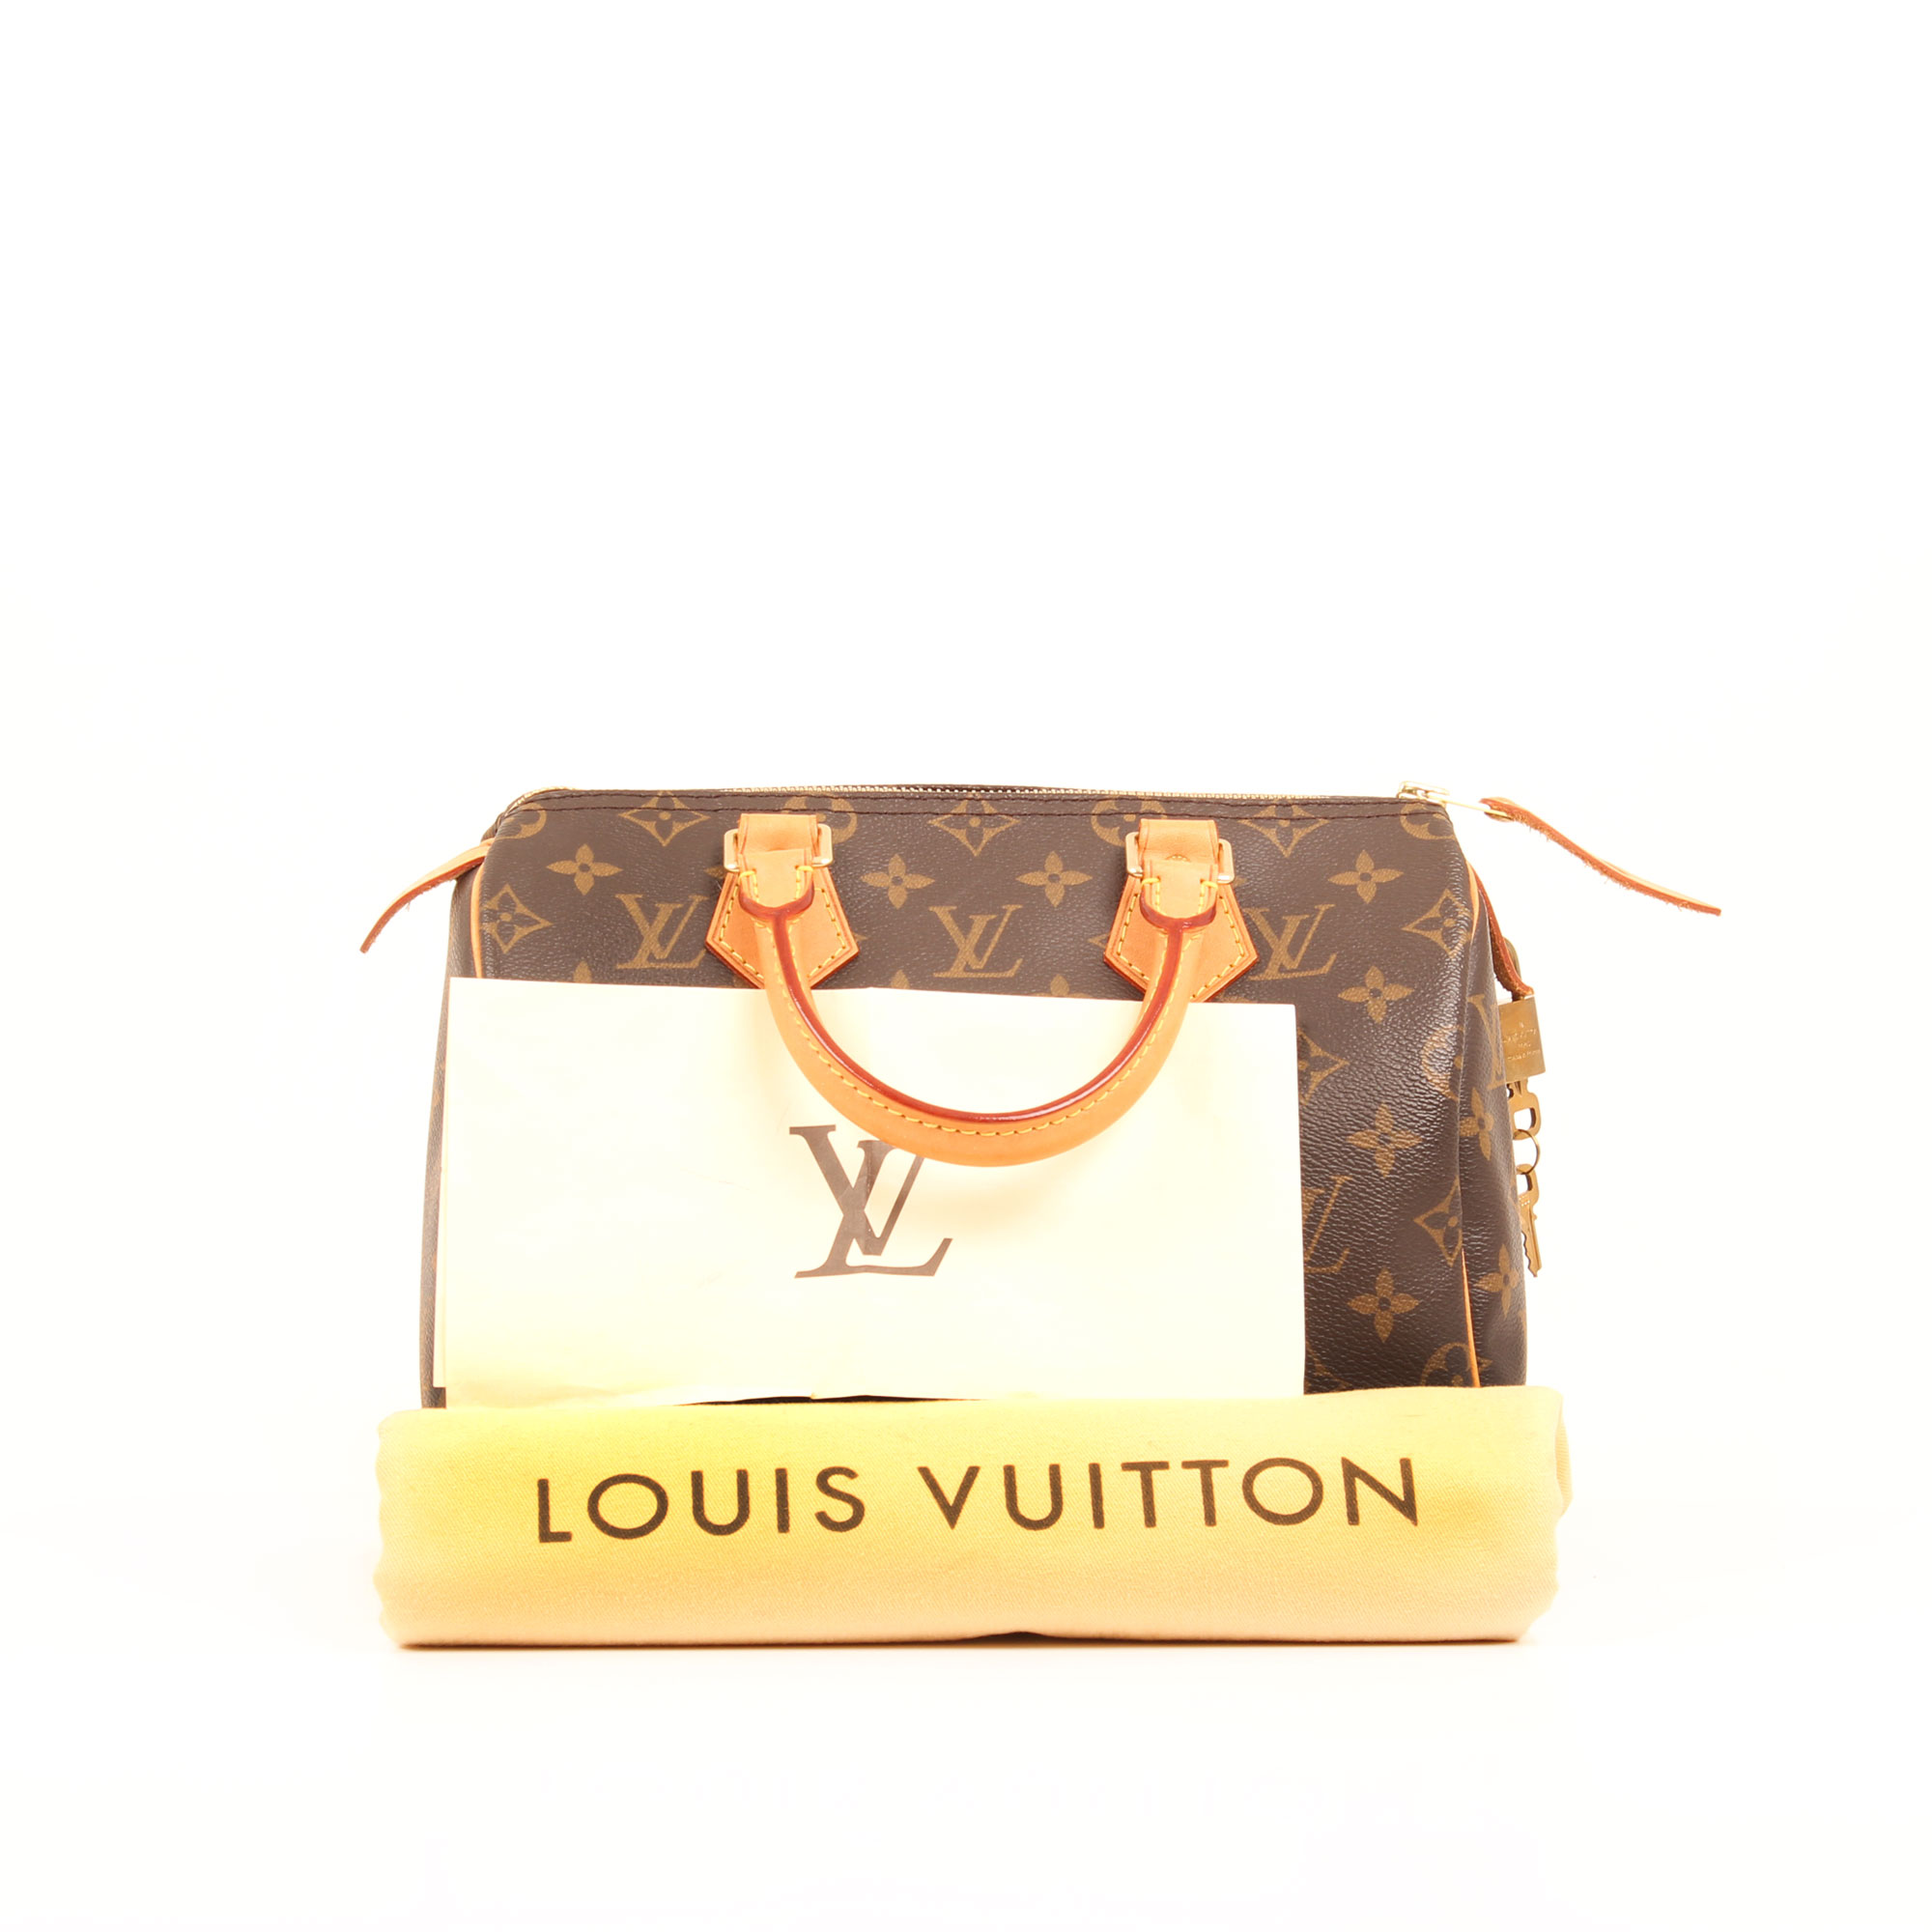 Imagen de los extras y dustbag del bolso louis vuitton speedy 25 monogram